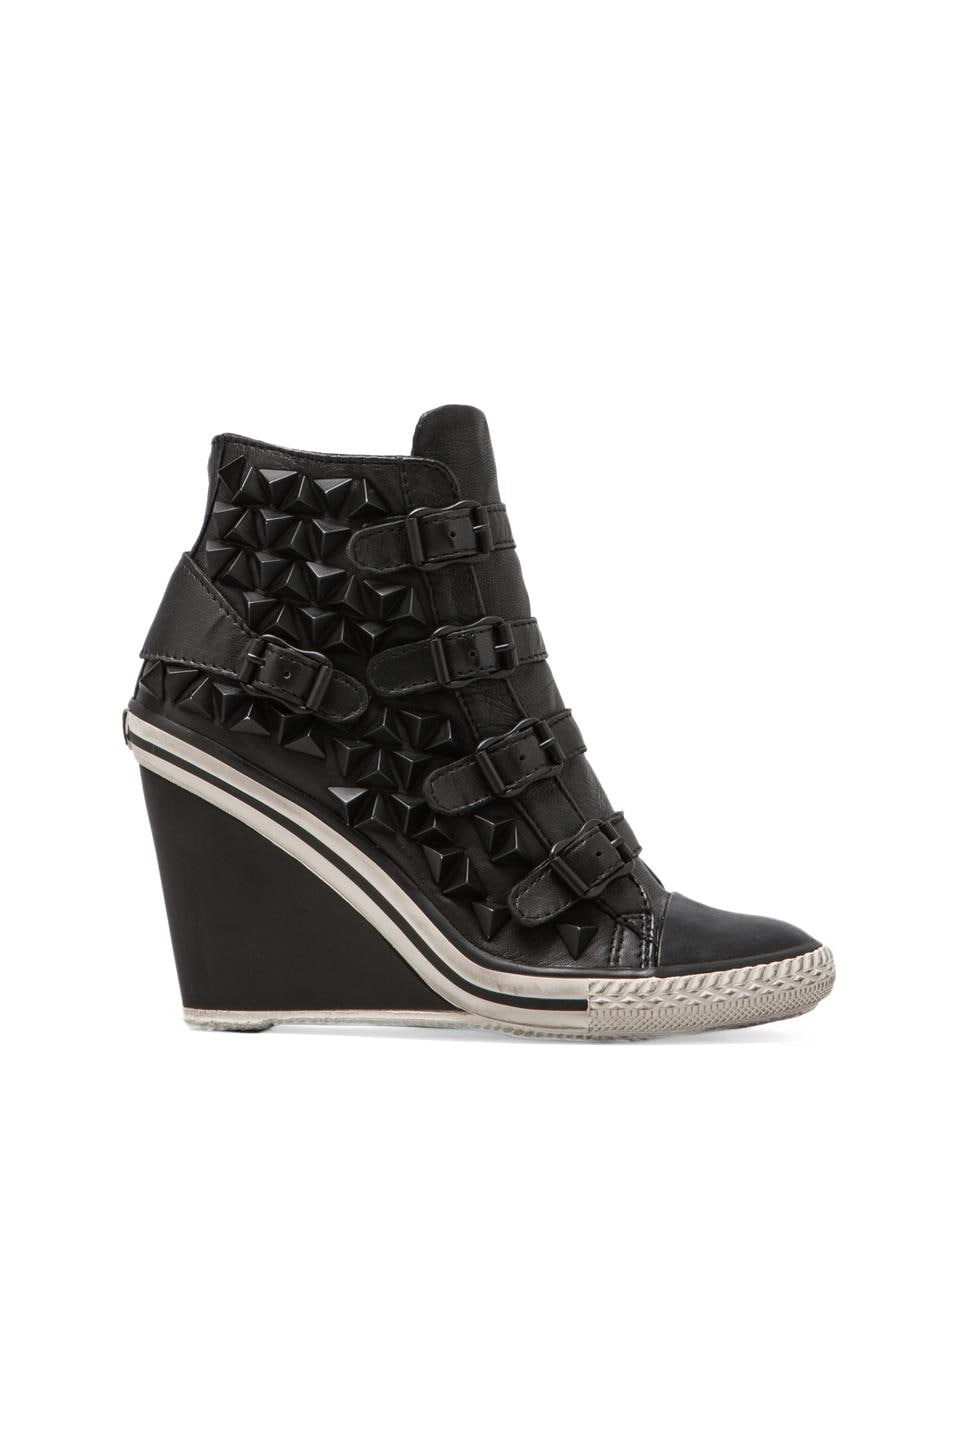 Ash Tiffany Wedge Sneaker in Black/Black Studs